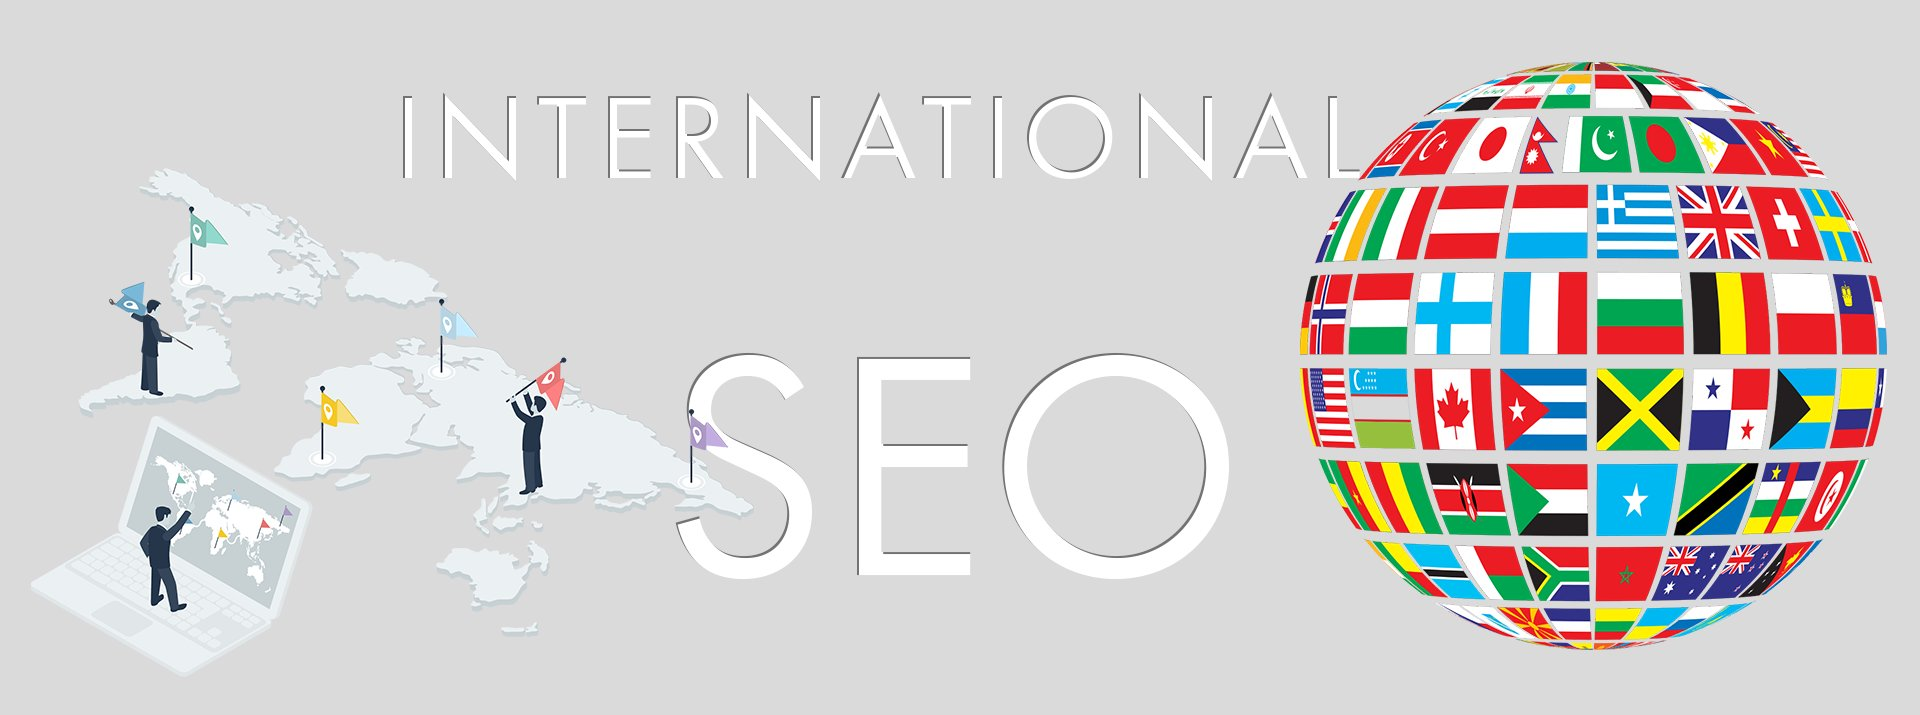 international-seo-2.jpg